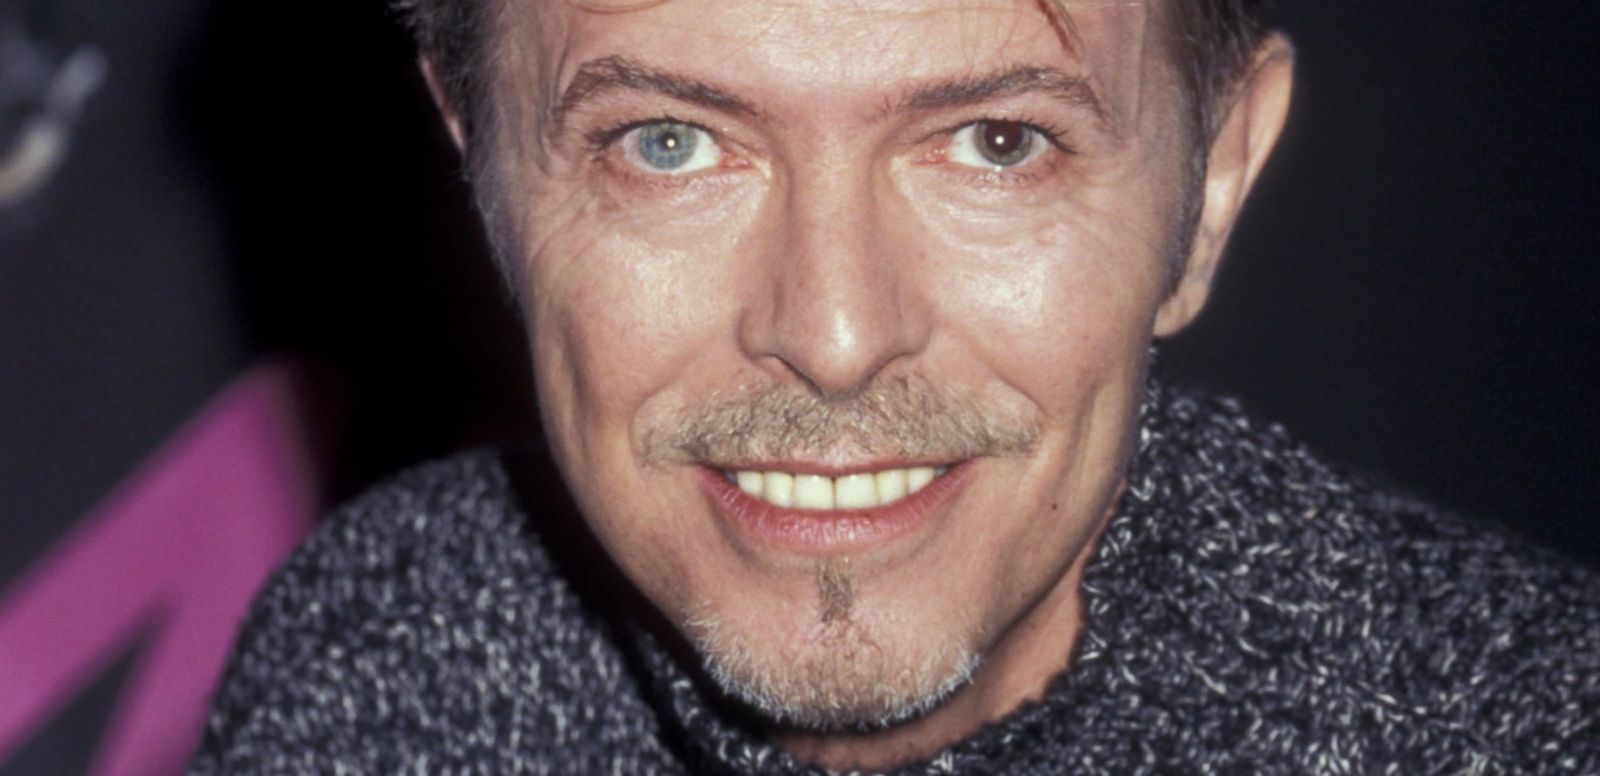 VIDEO: Remembering David Bowie